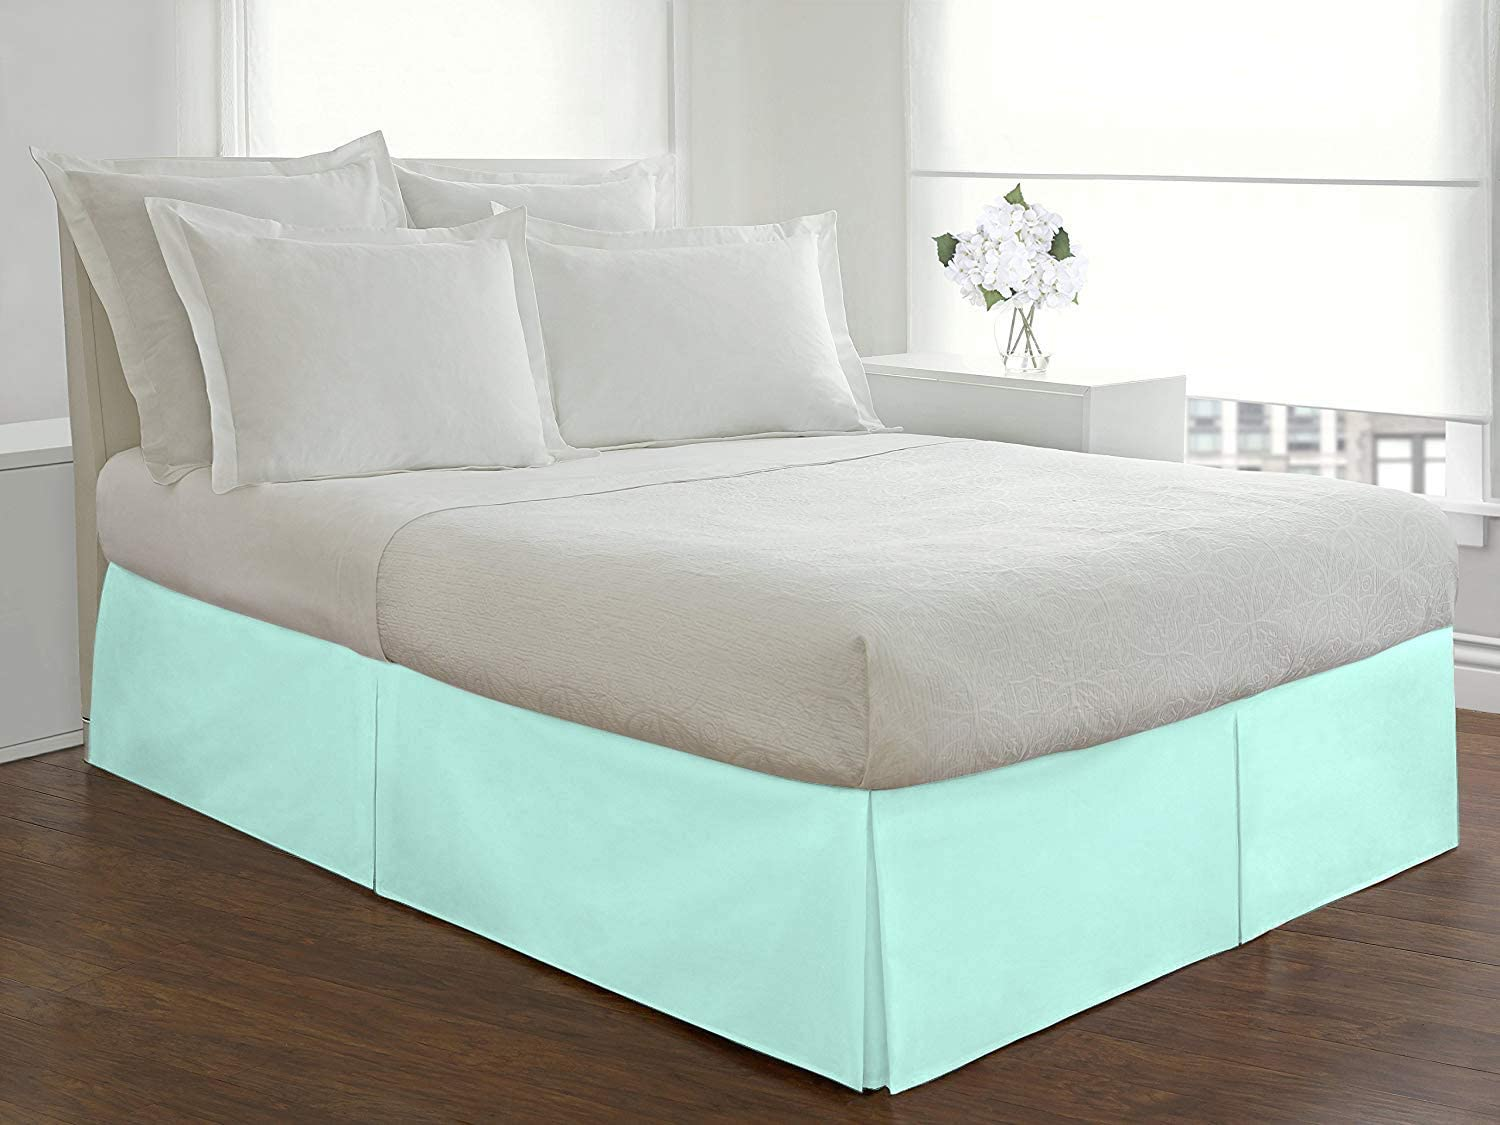 Fabricom Box Pleated Bed Skirt Queen Lon Drop inch Size メーカー直売 16